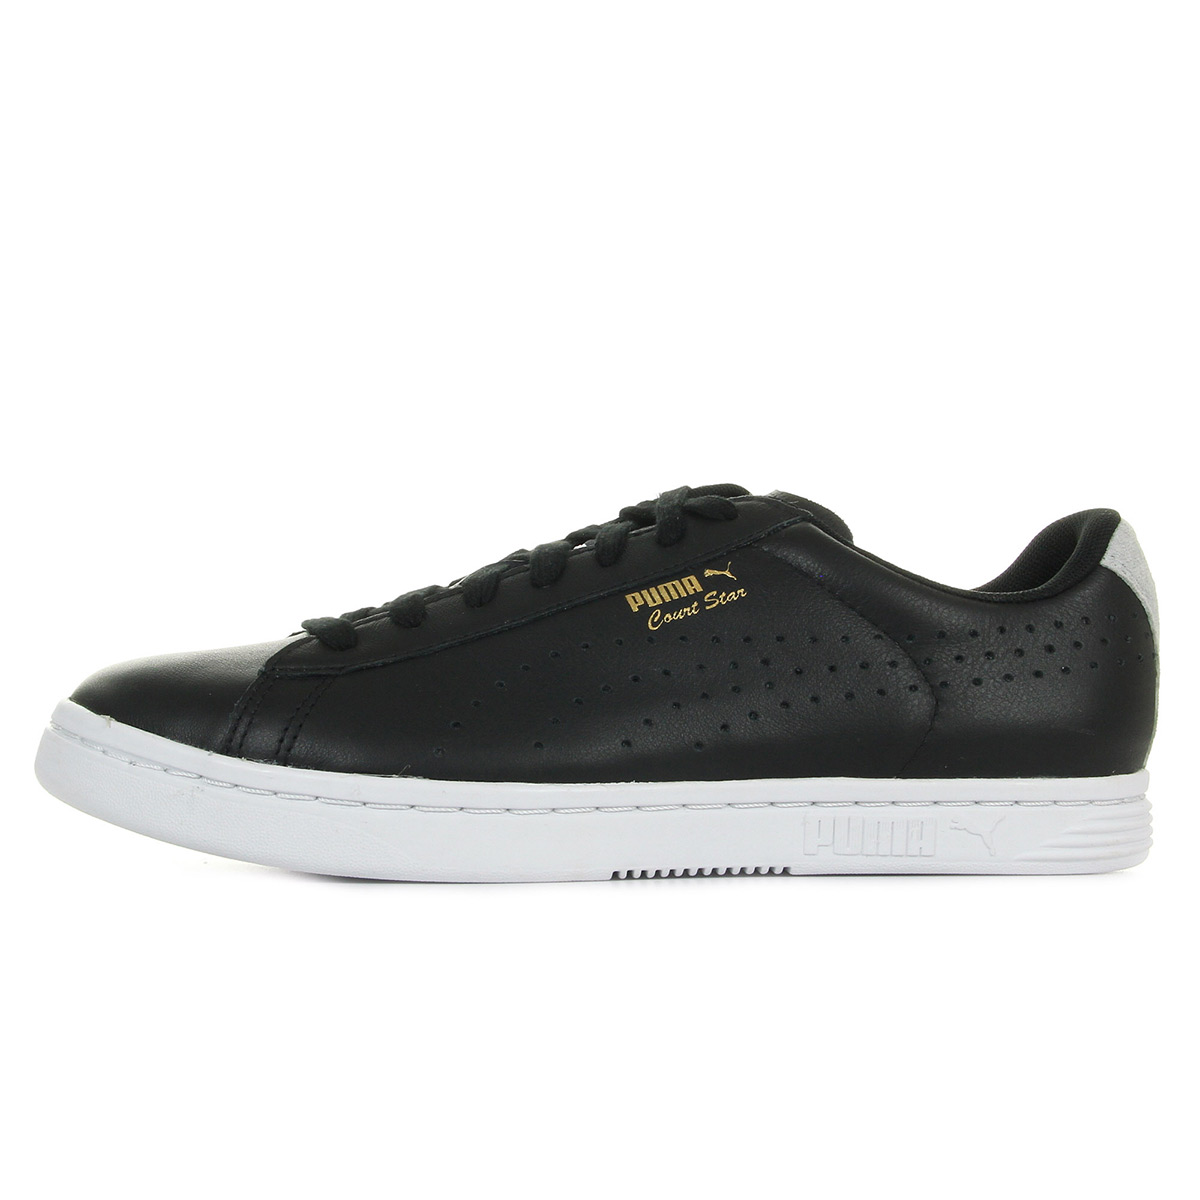 Puma Court Star Crafted 35997707, Baskets mode homme